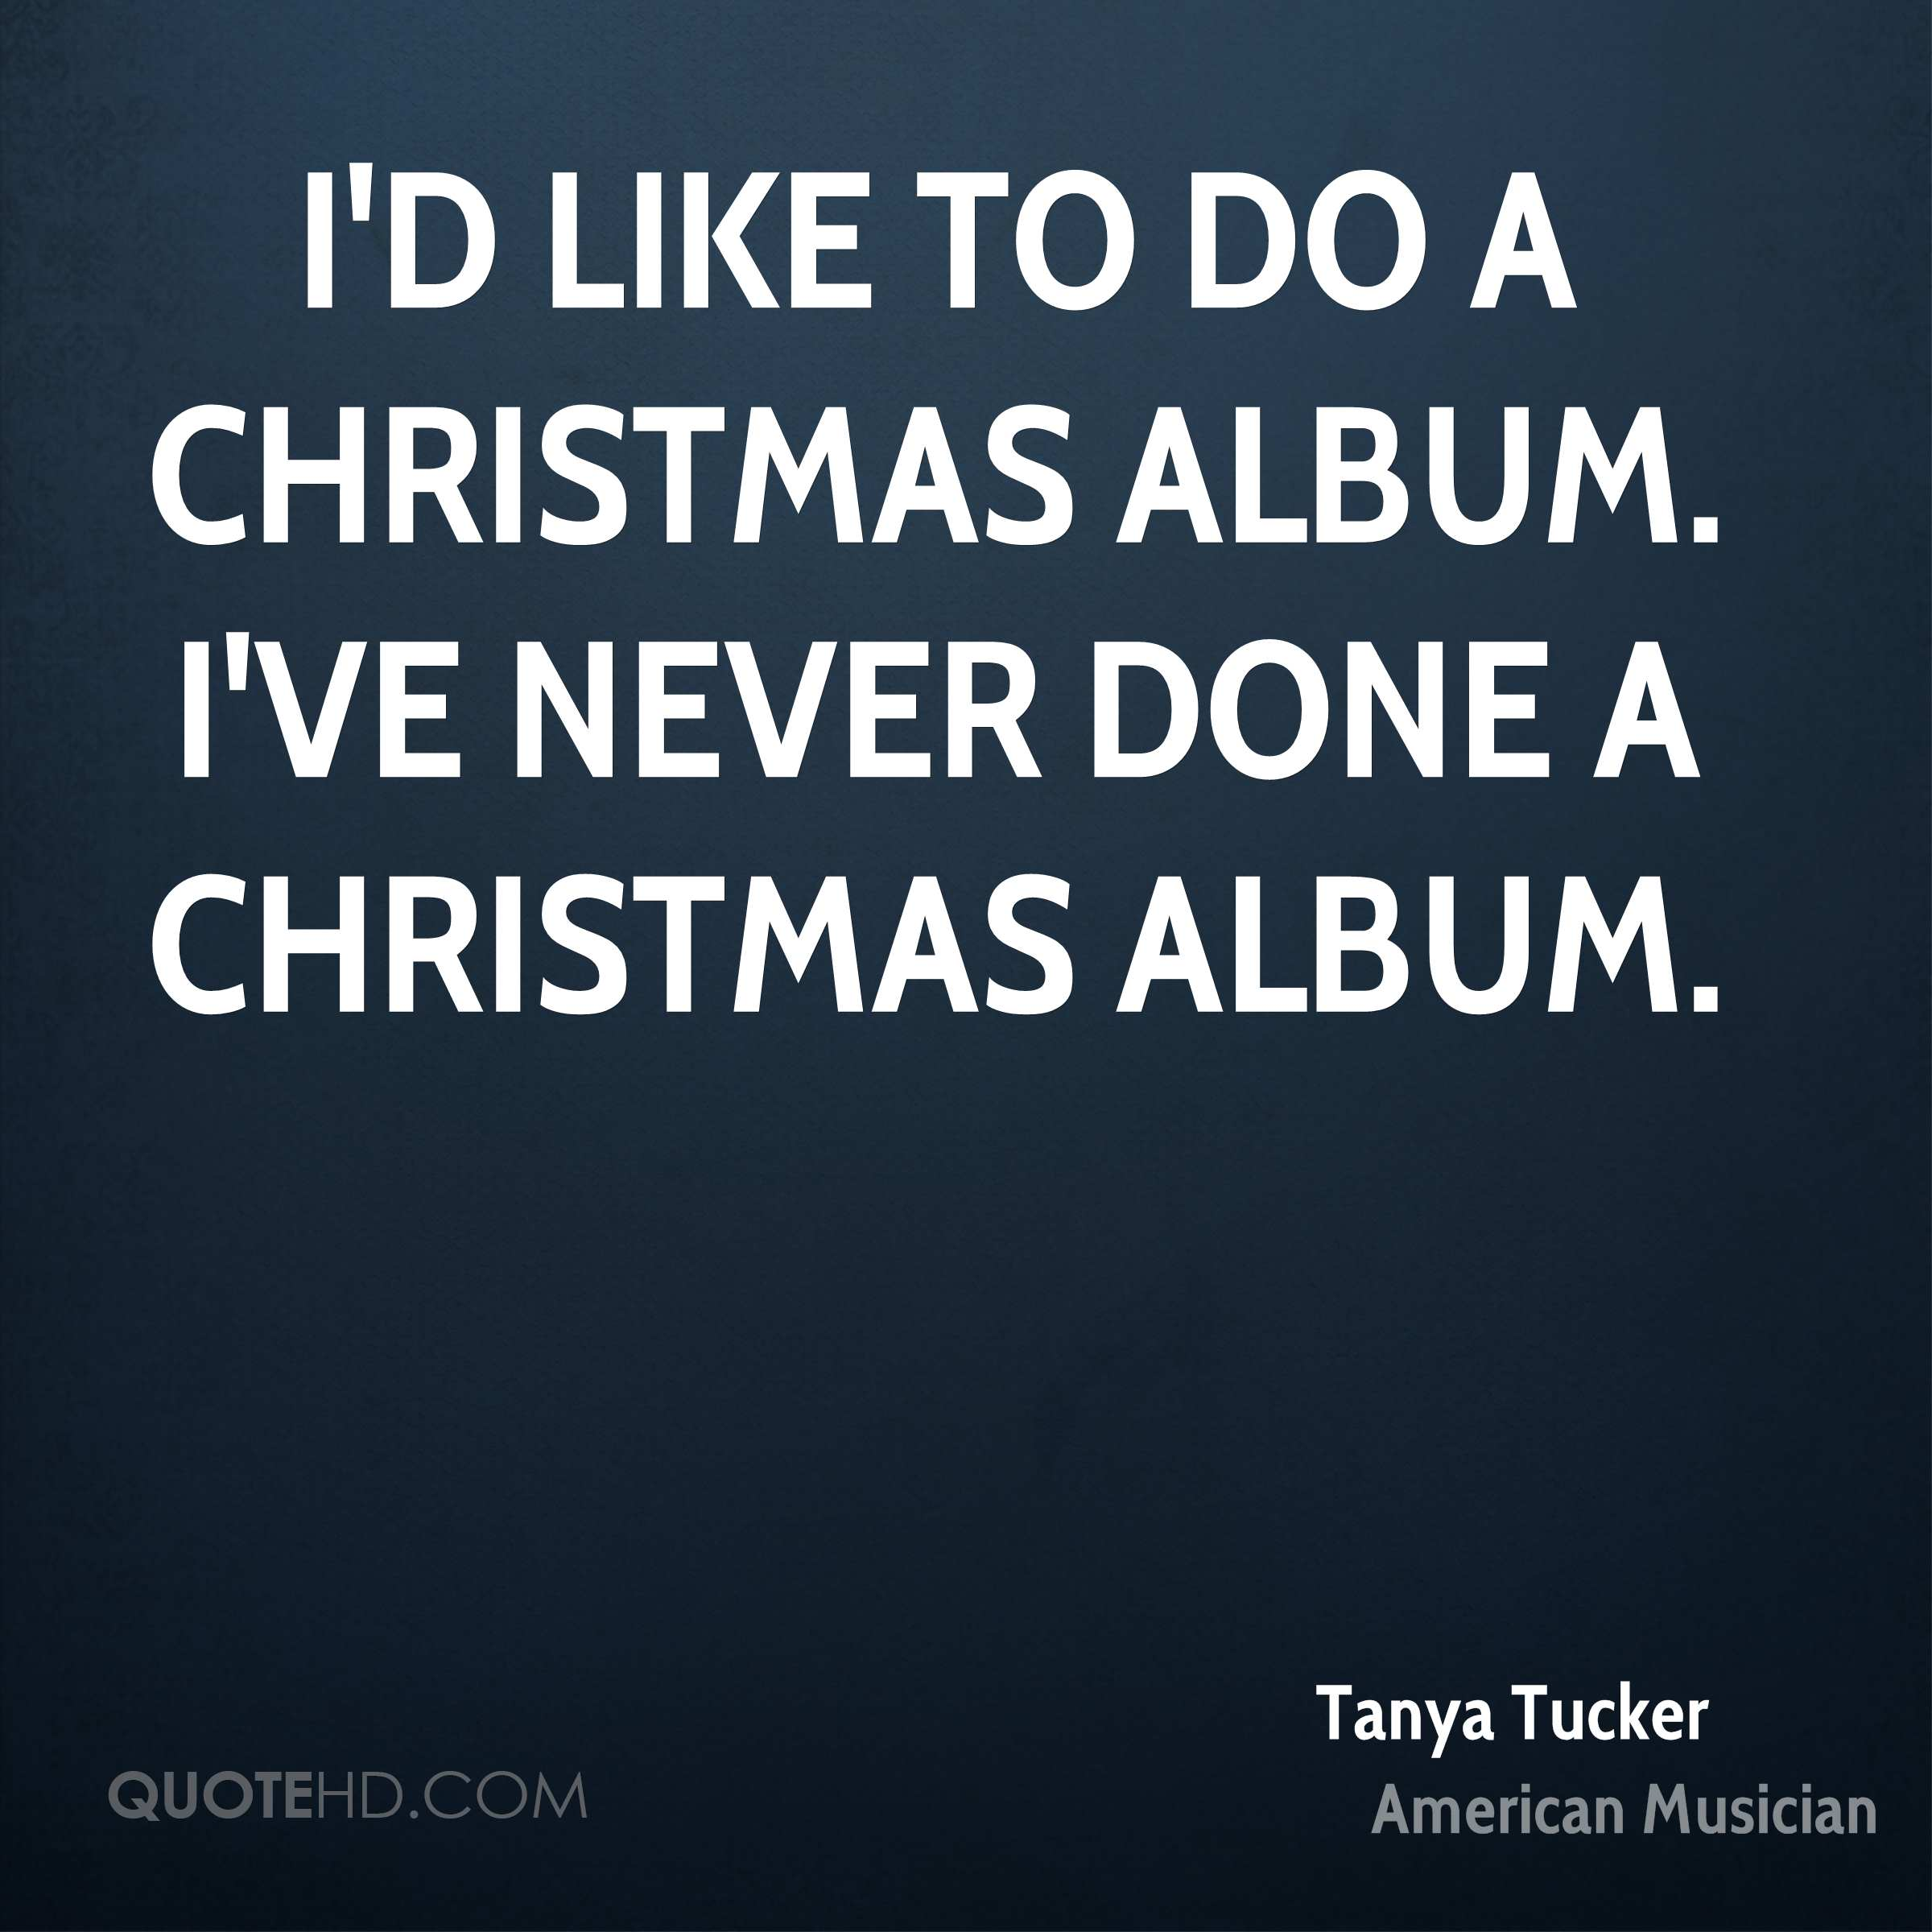 I'd like to do a Christmas album. I've never done a Christmas album.